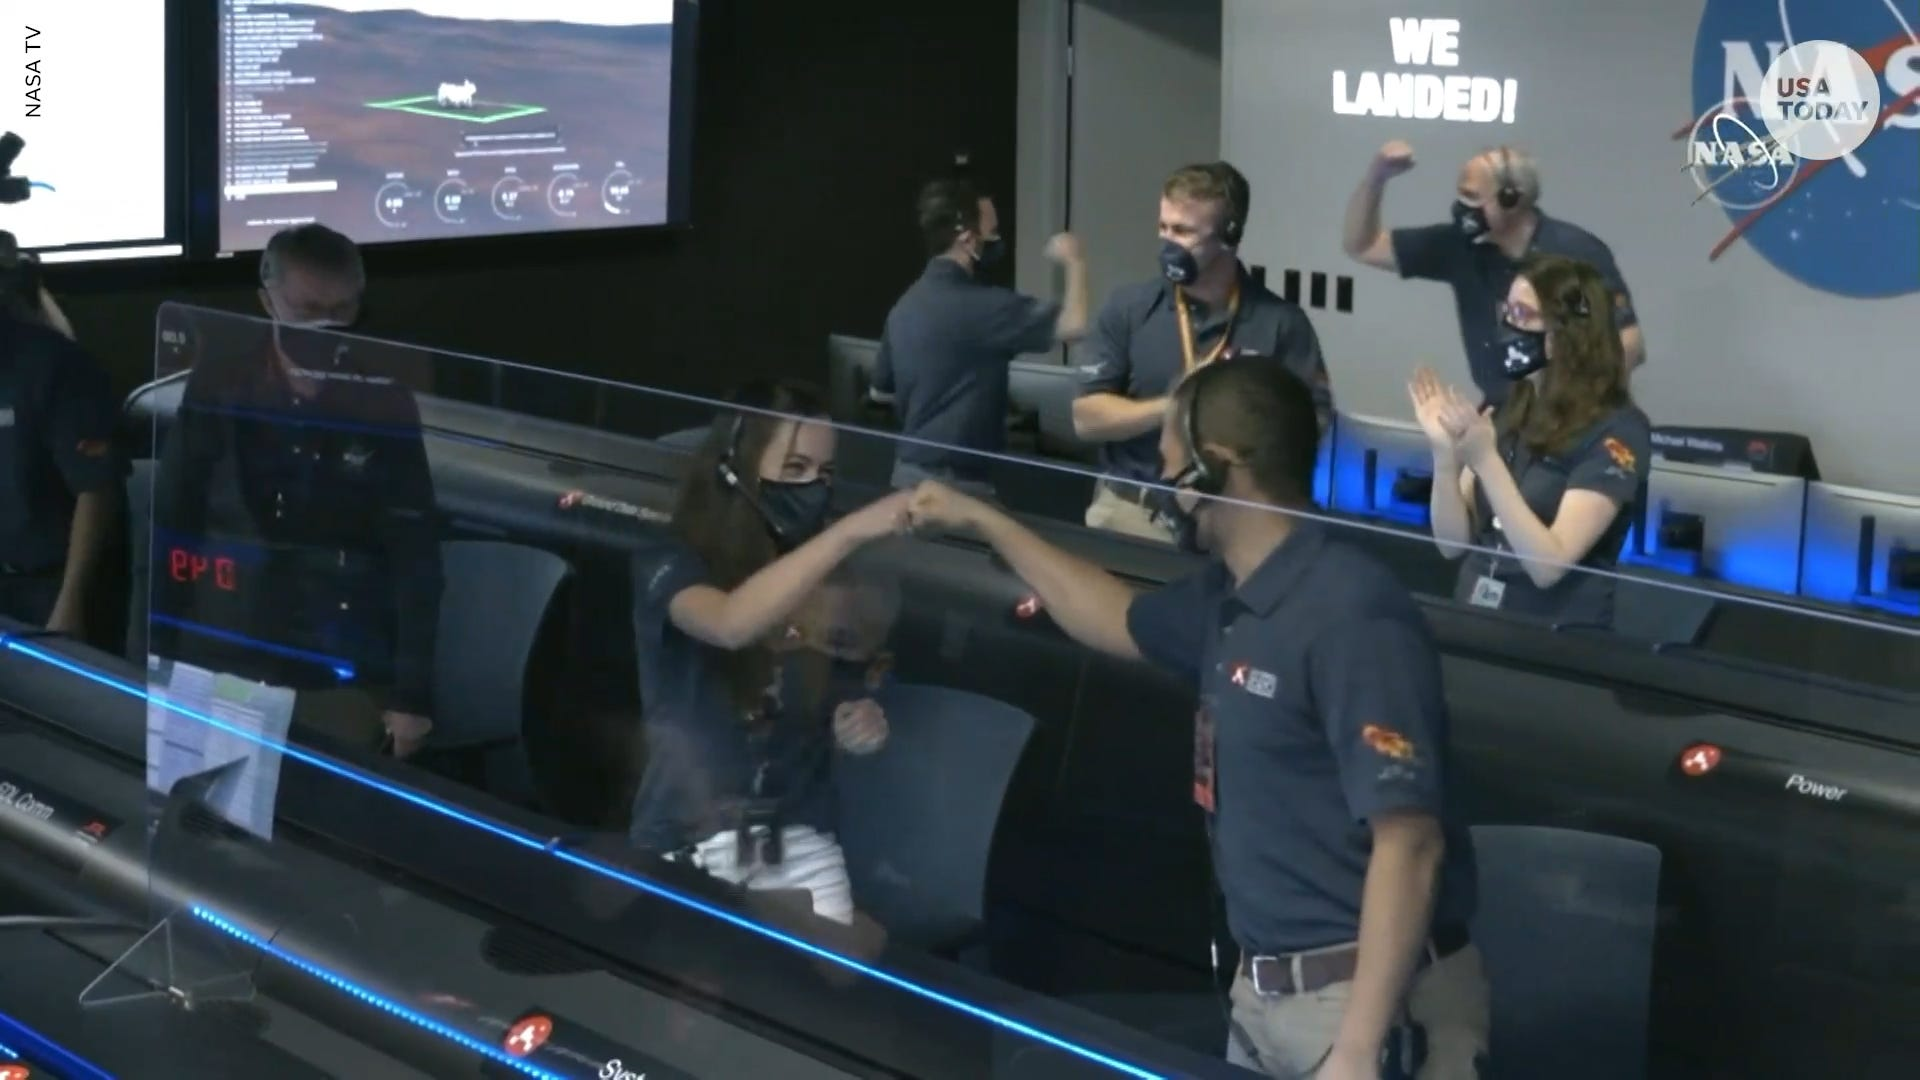 Watch as NASA's Perseverance rover landing on Mars is met with celebrations